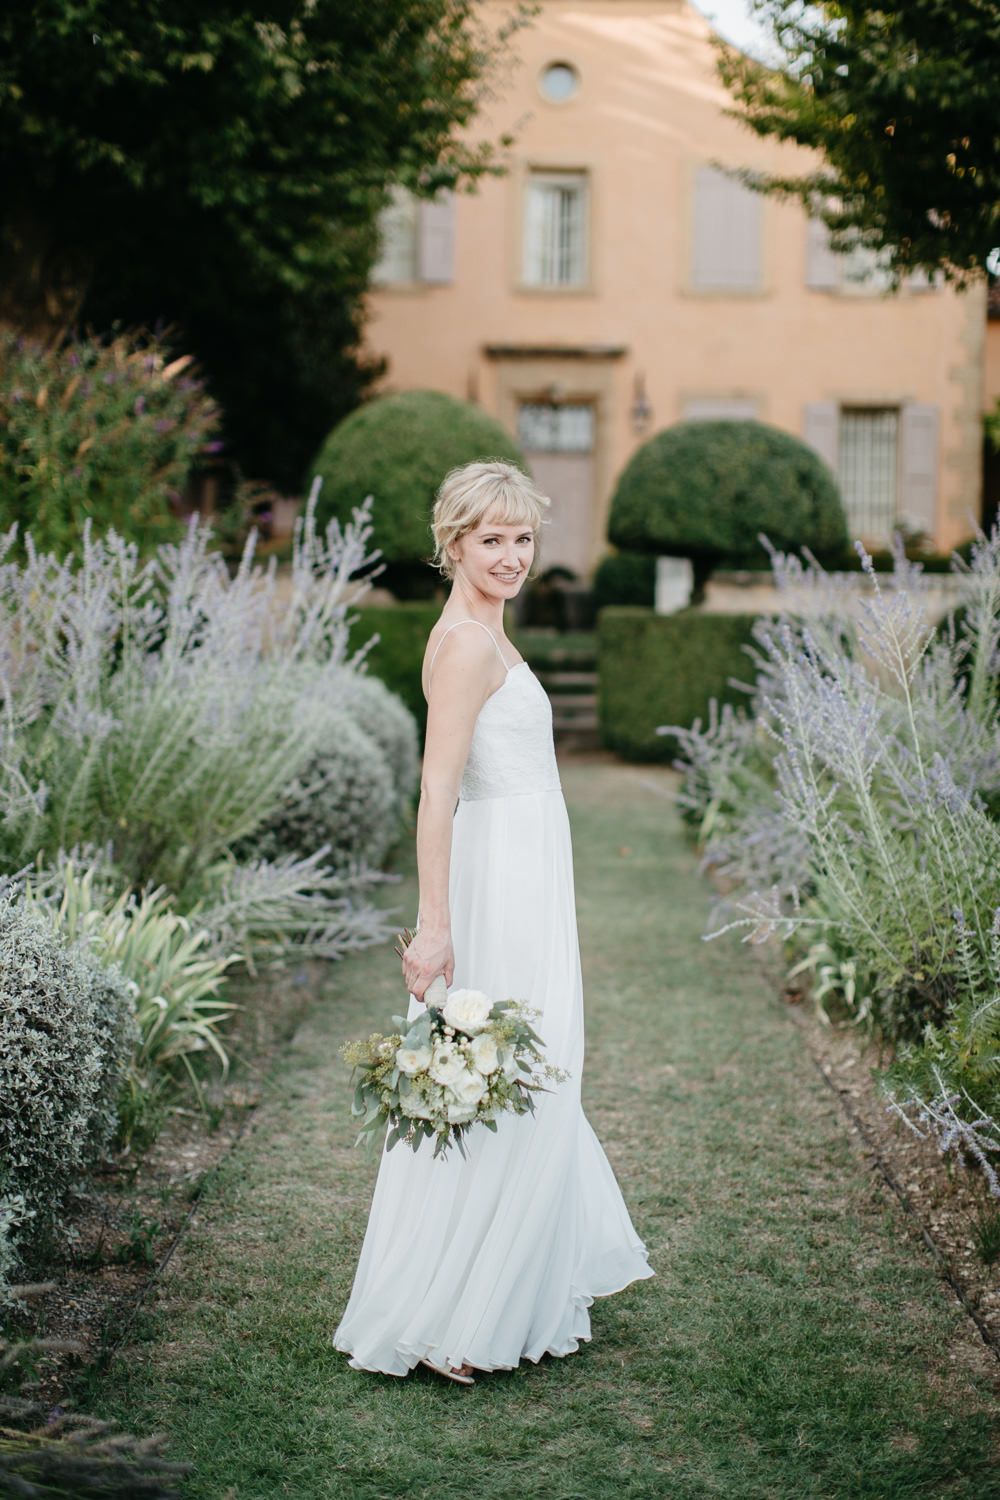 Bride during her wedding in the south of France in Lourmarin